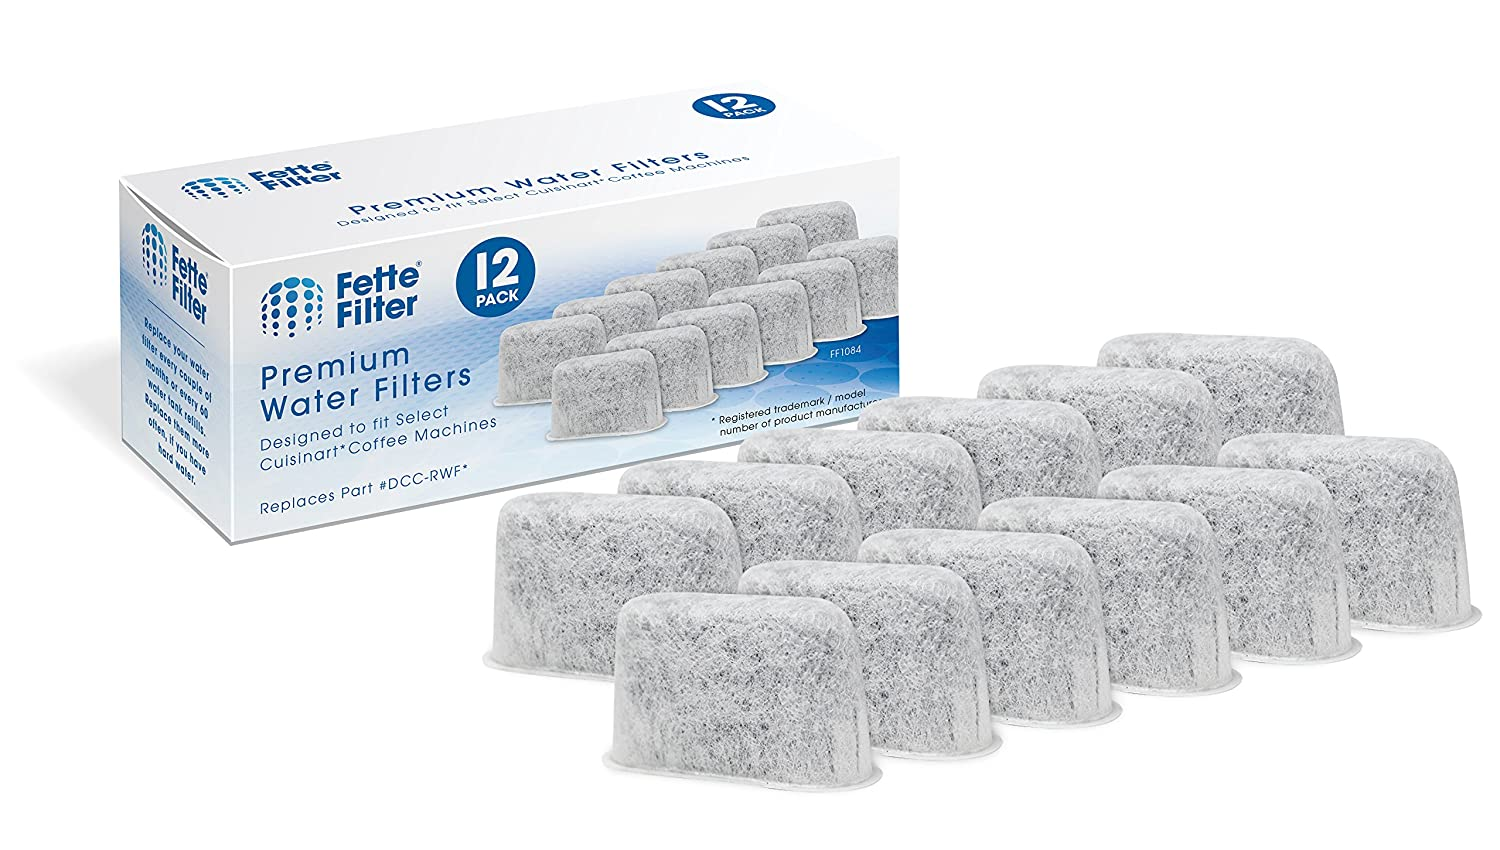 Fette Filter - Activated Charcoal Water Filters for Coffee Machines DCC-RWF Compatible for Cuisinart. (Pack of 12) FF1084